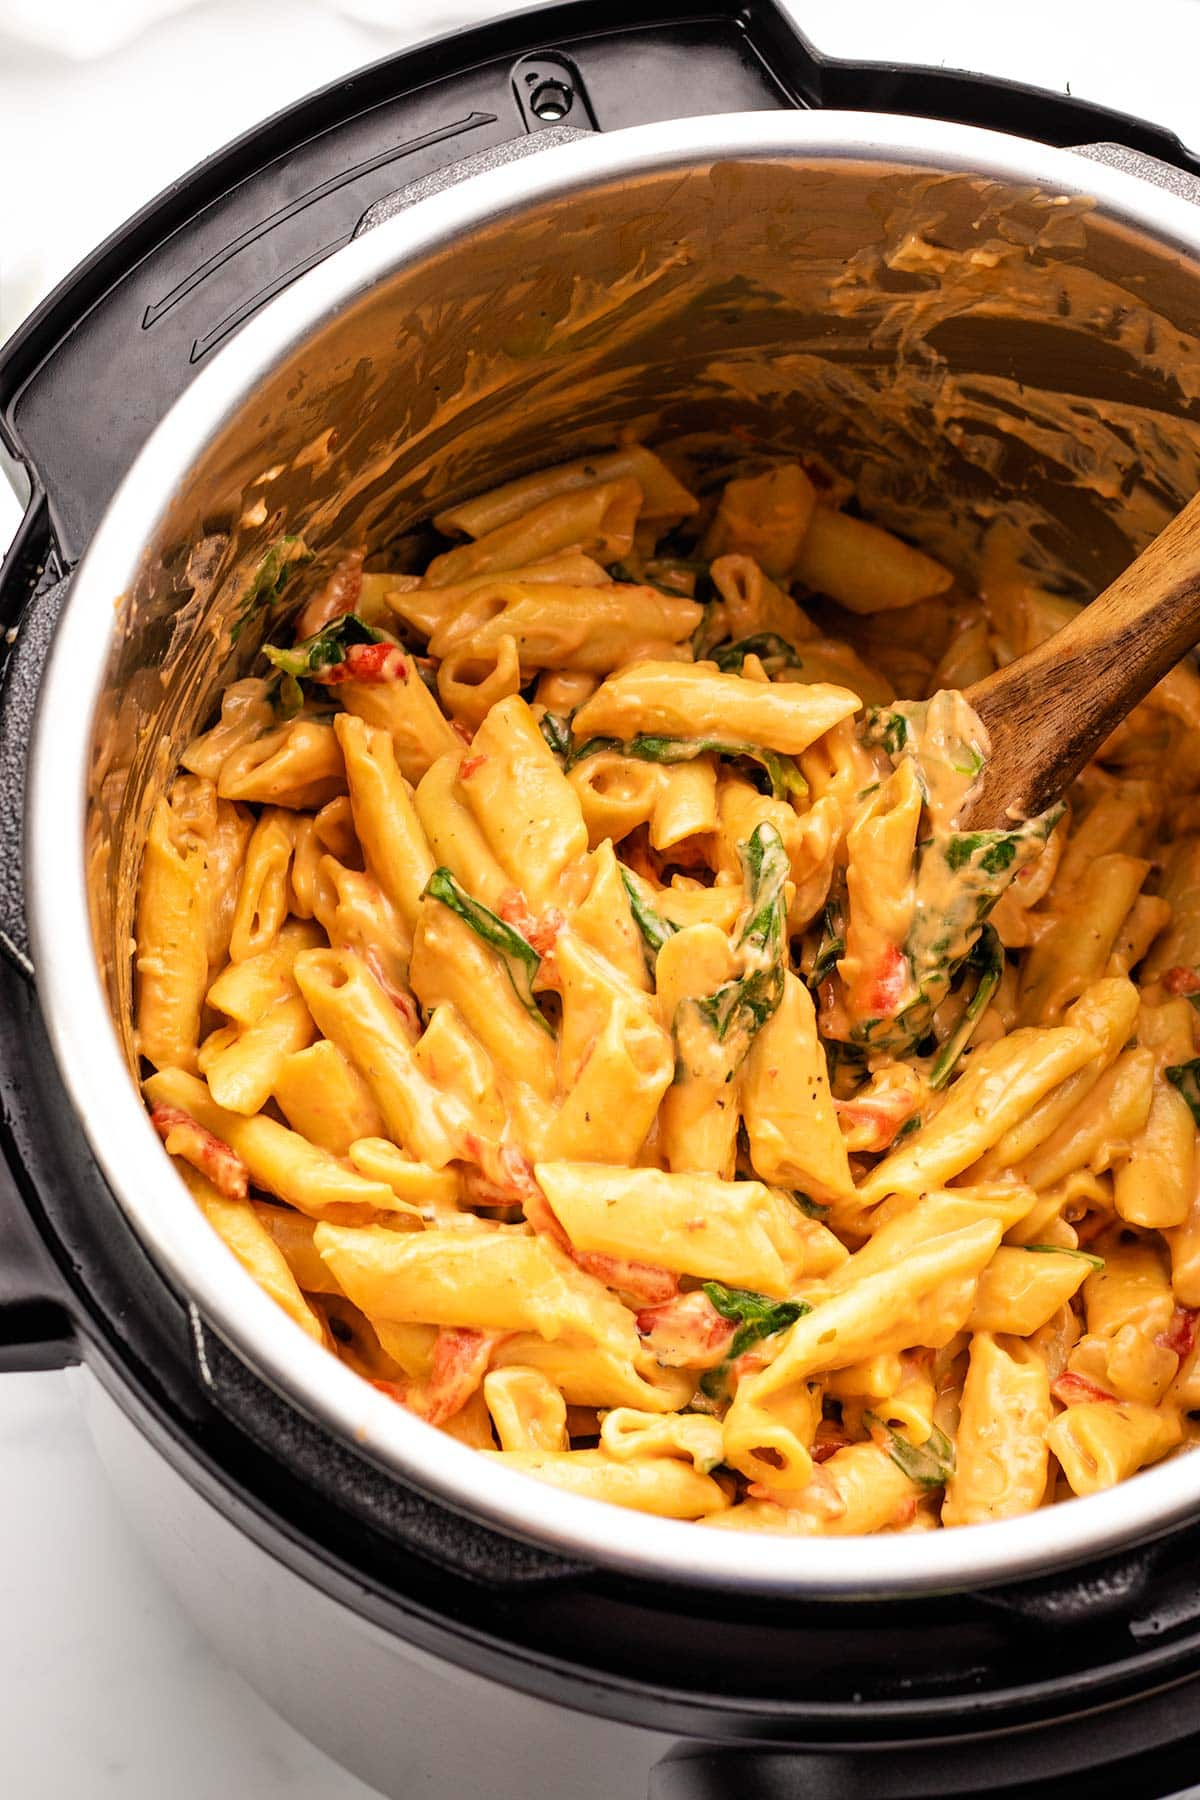 creamy vegan pasta with spinach and roasted red peppers being stirred by a wooden spoon in an Instant Pot